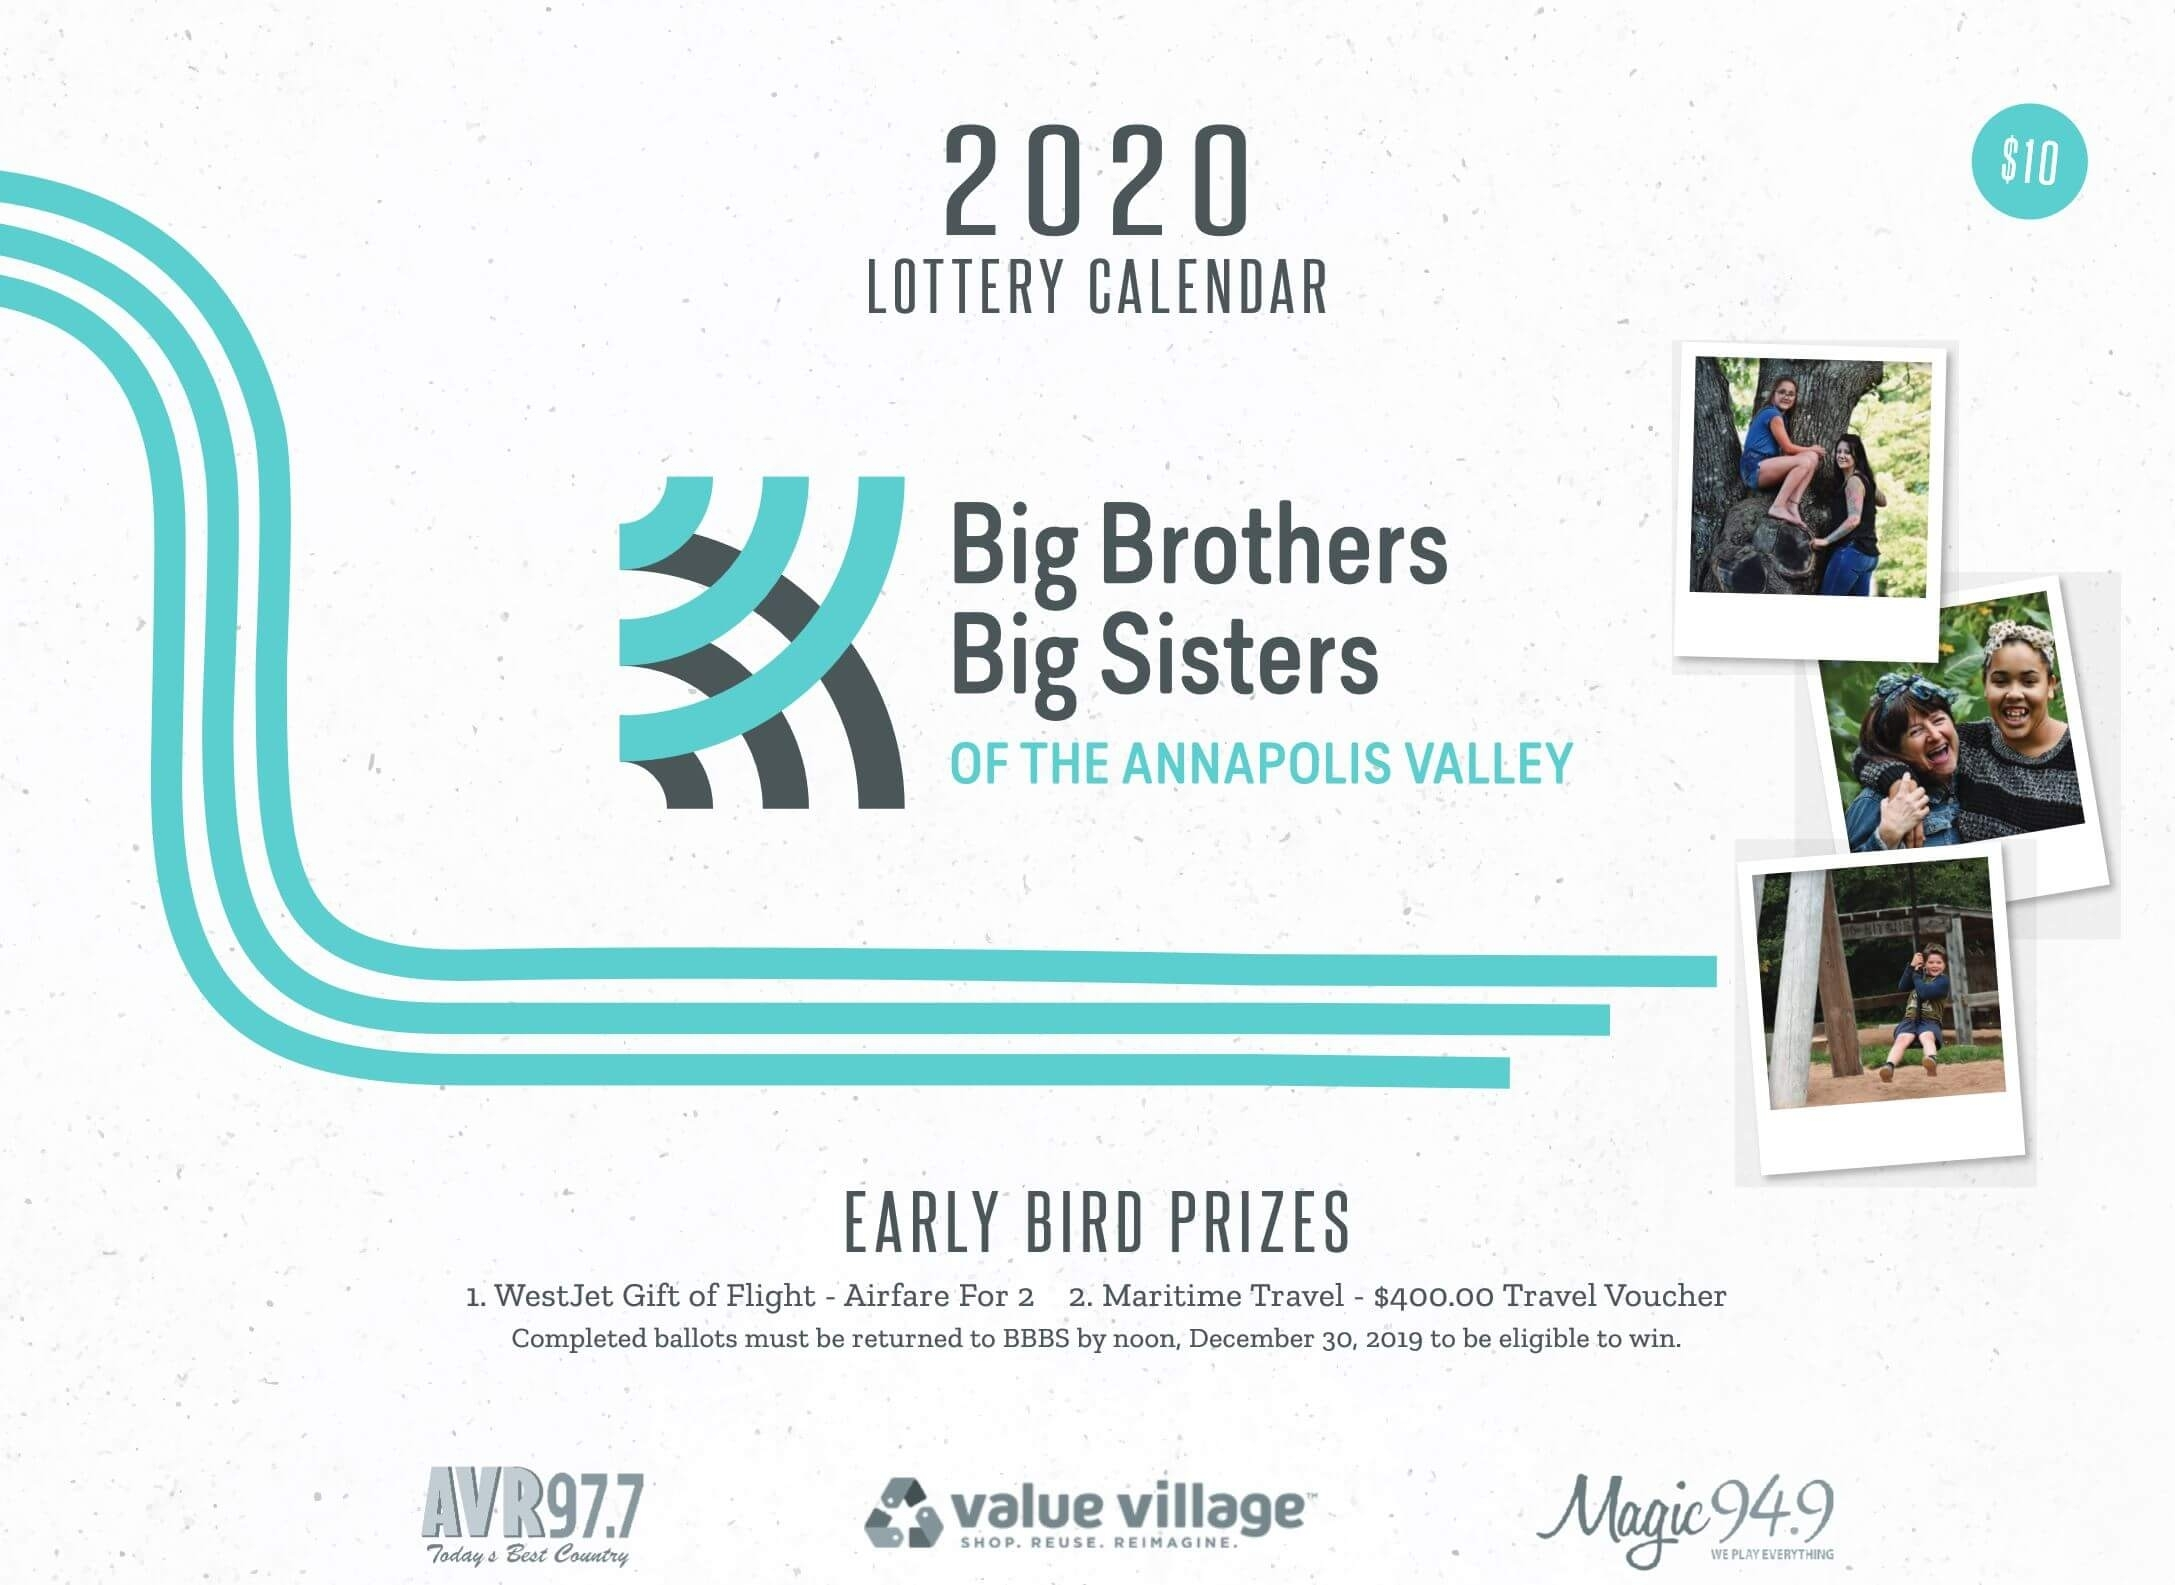 2020 Lottery Calendars Now Available! - Big Brothers Big